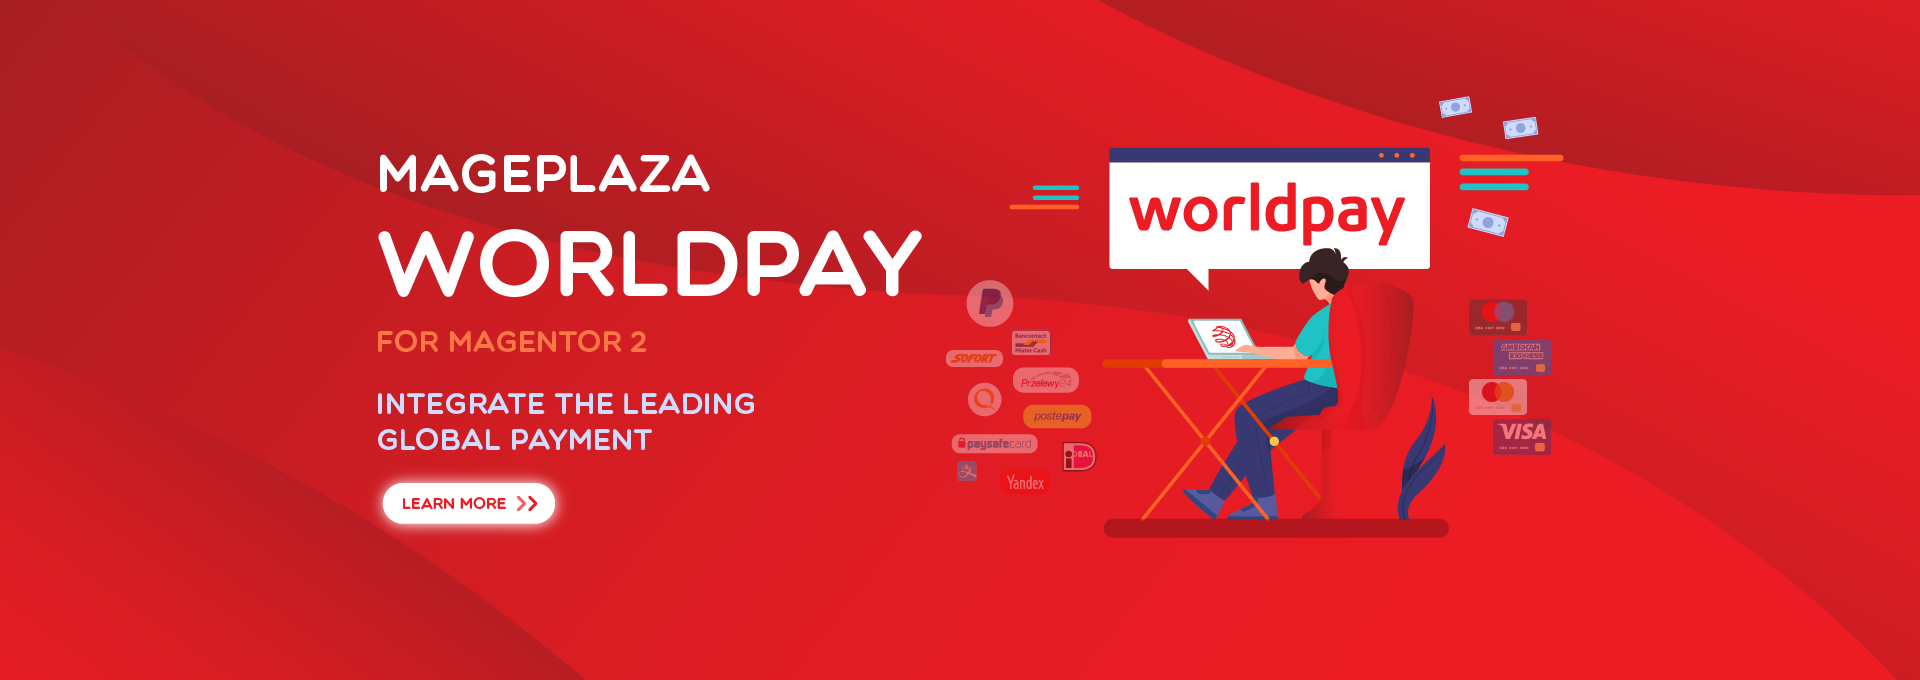 How to Integrate Worldpay in Magento 2